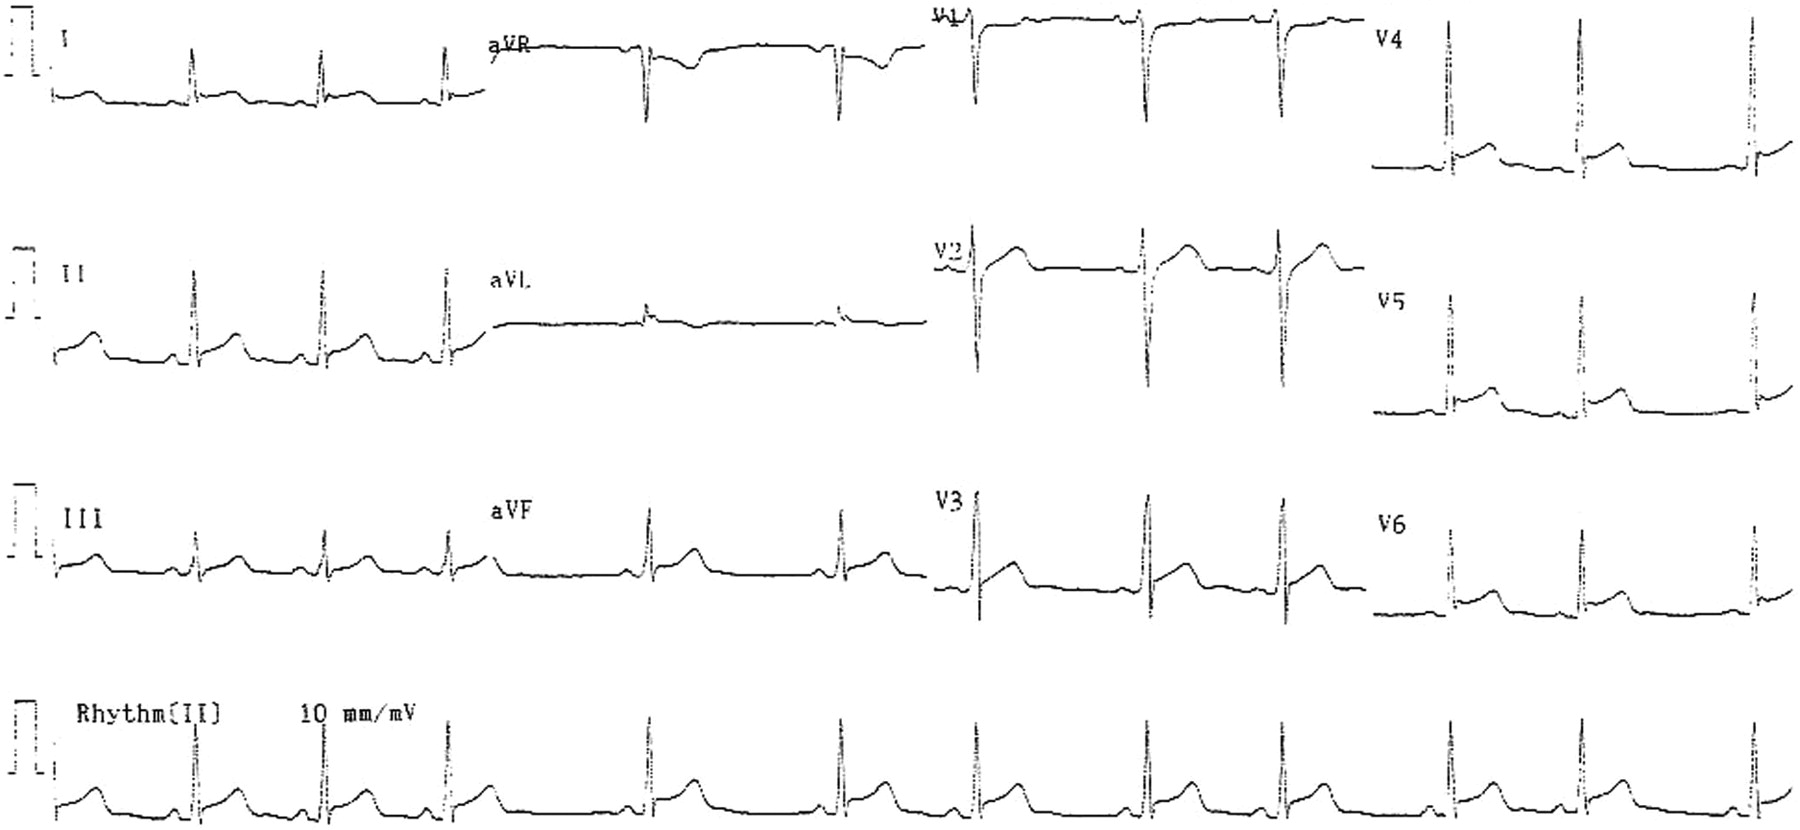 Myocardial Infarction Associated with Adderall XR and